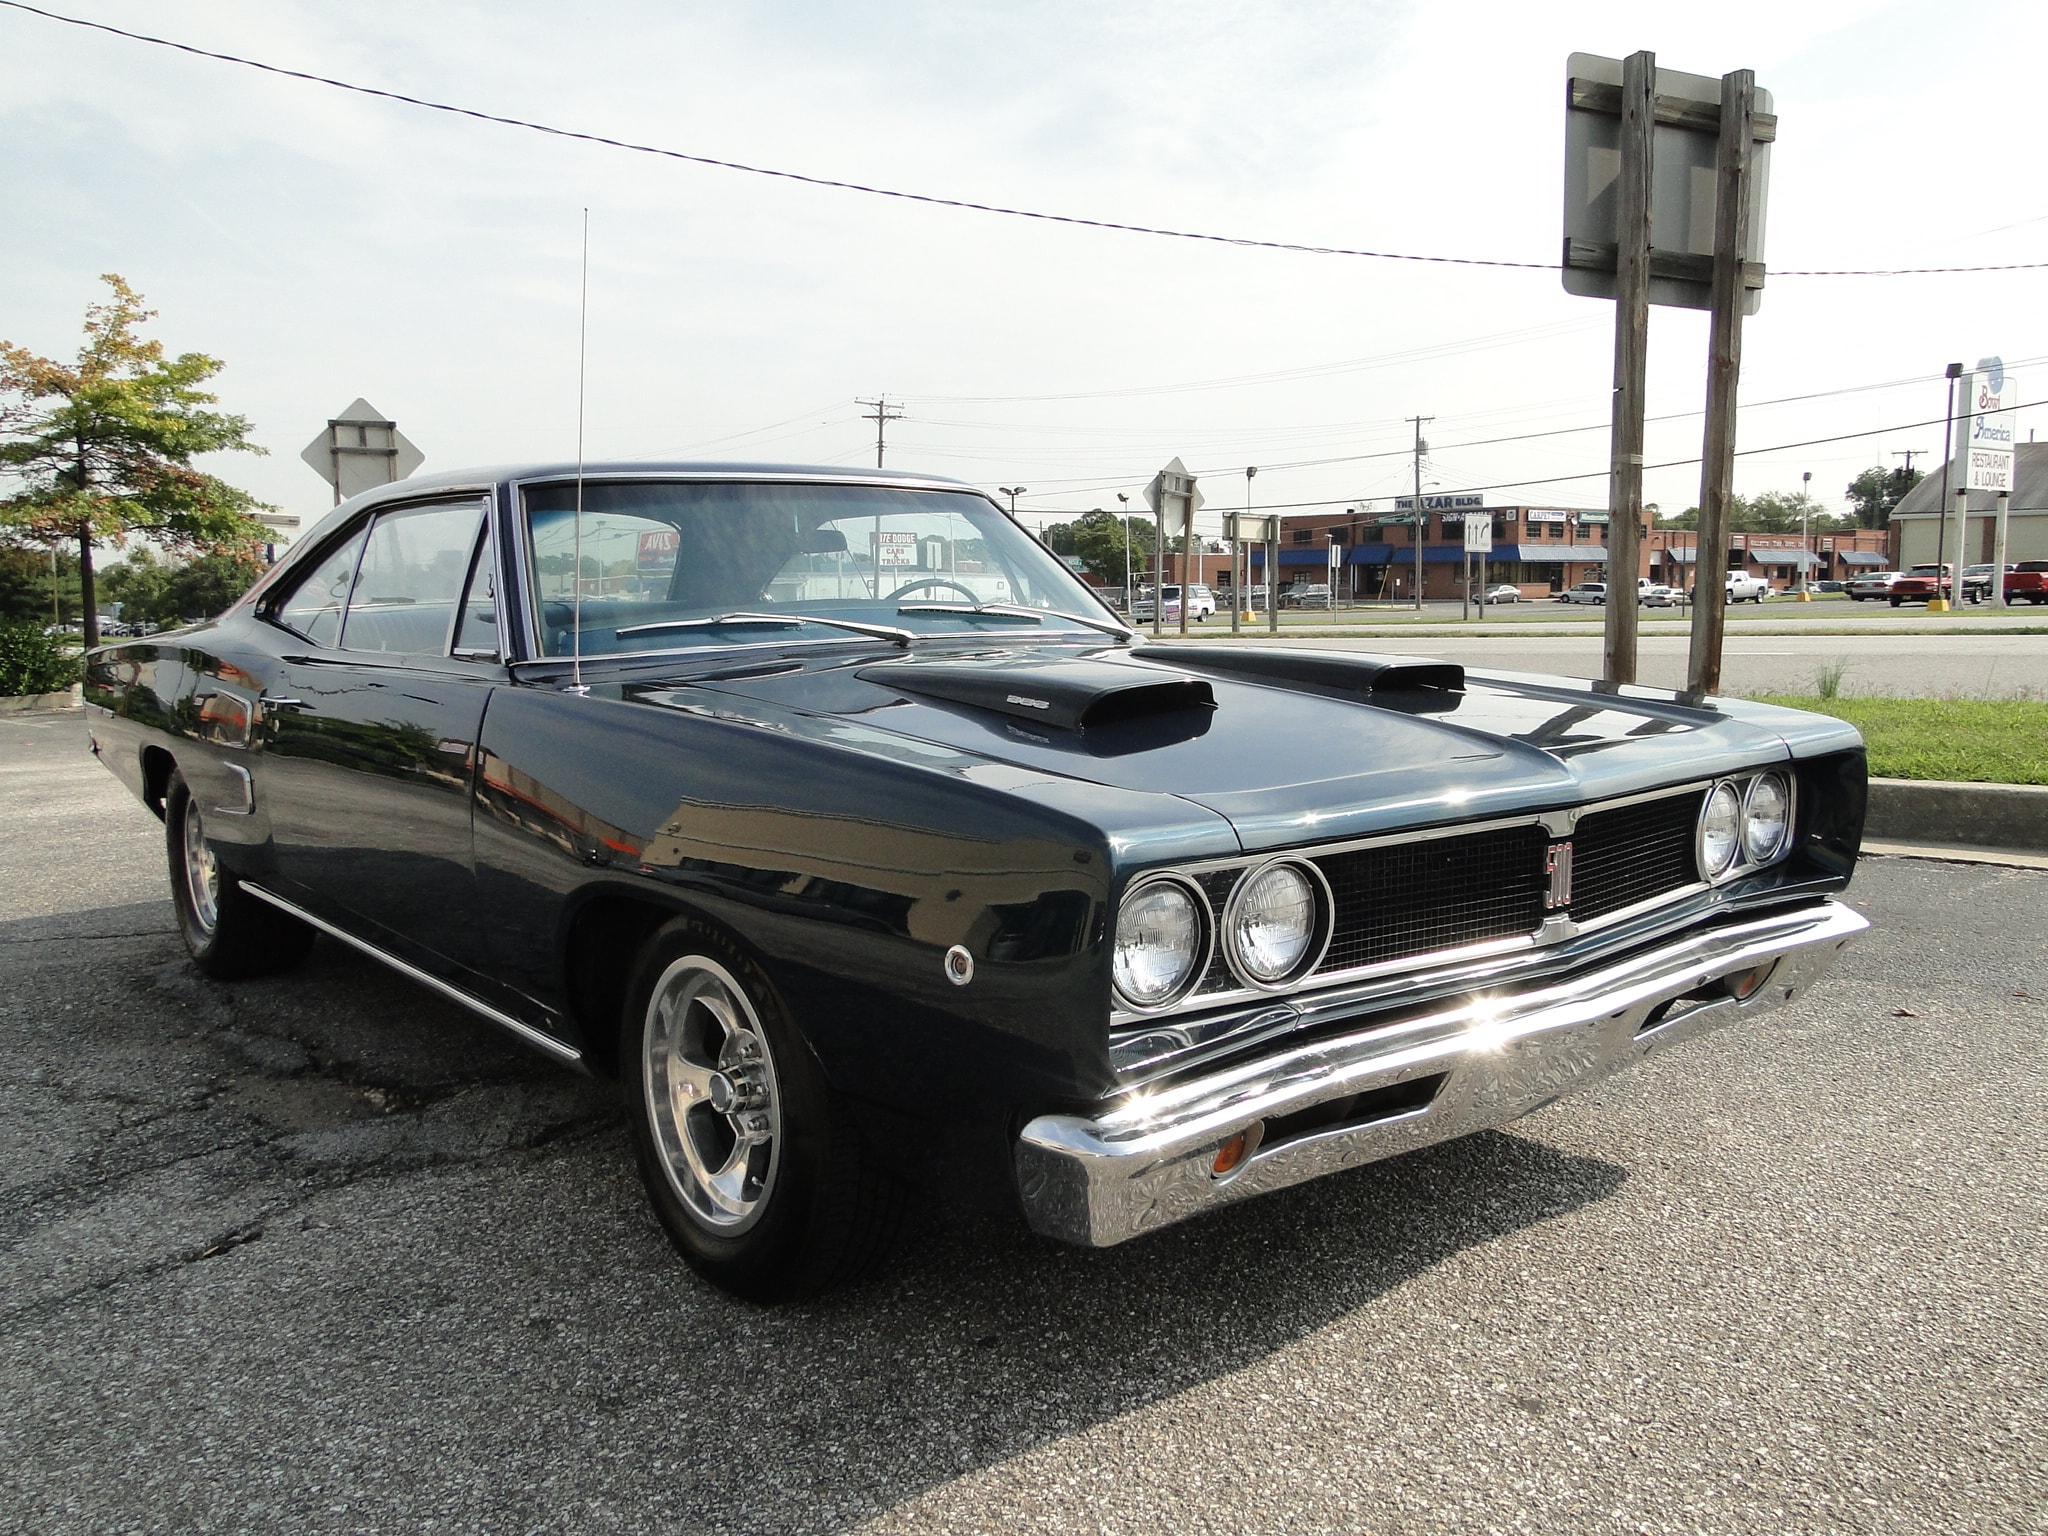 1968 Dodge Coronet 500 SOLD! Coupe Glen Burnie MD